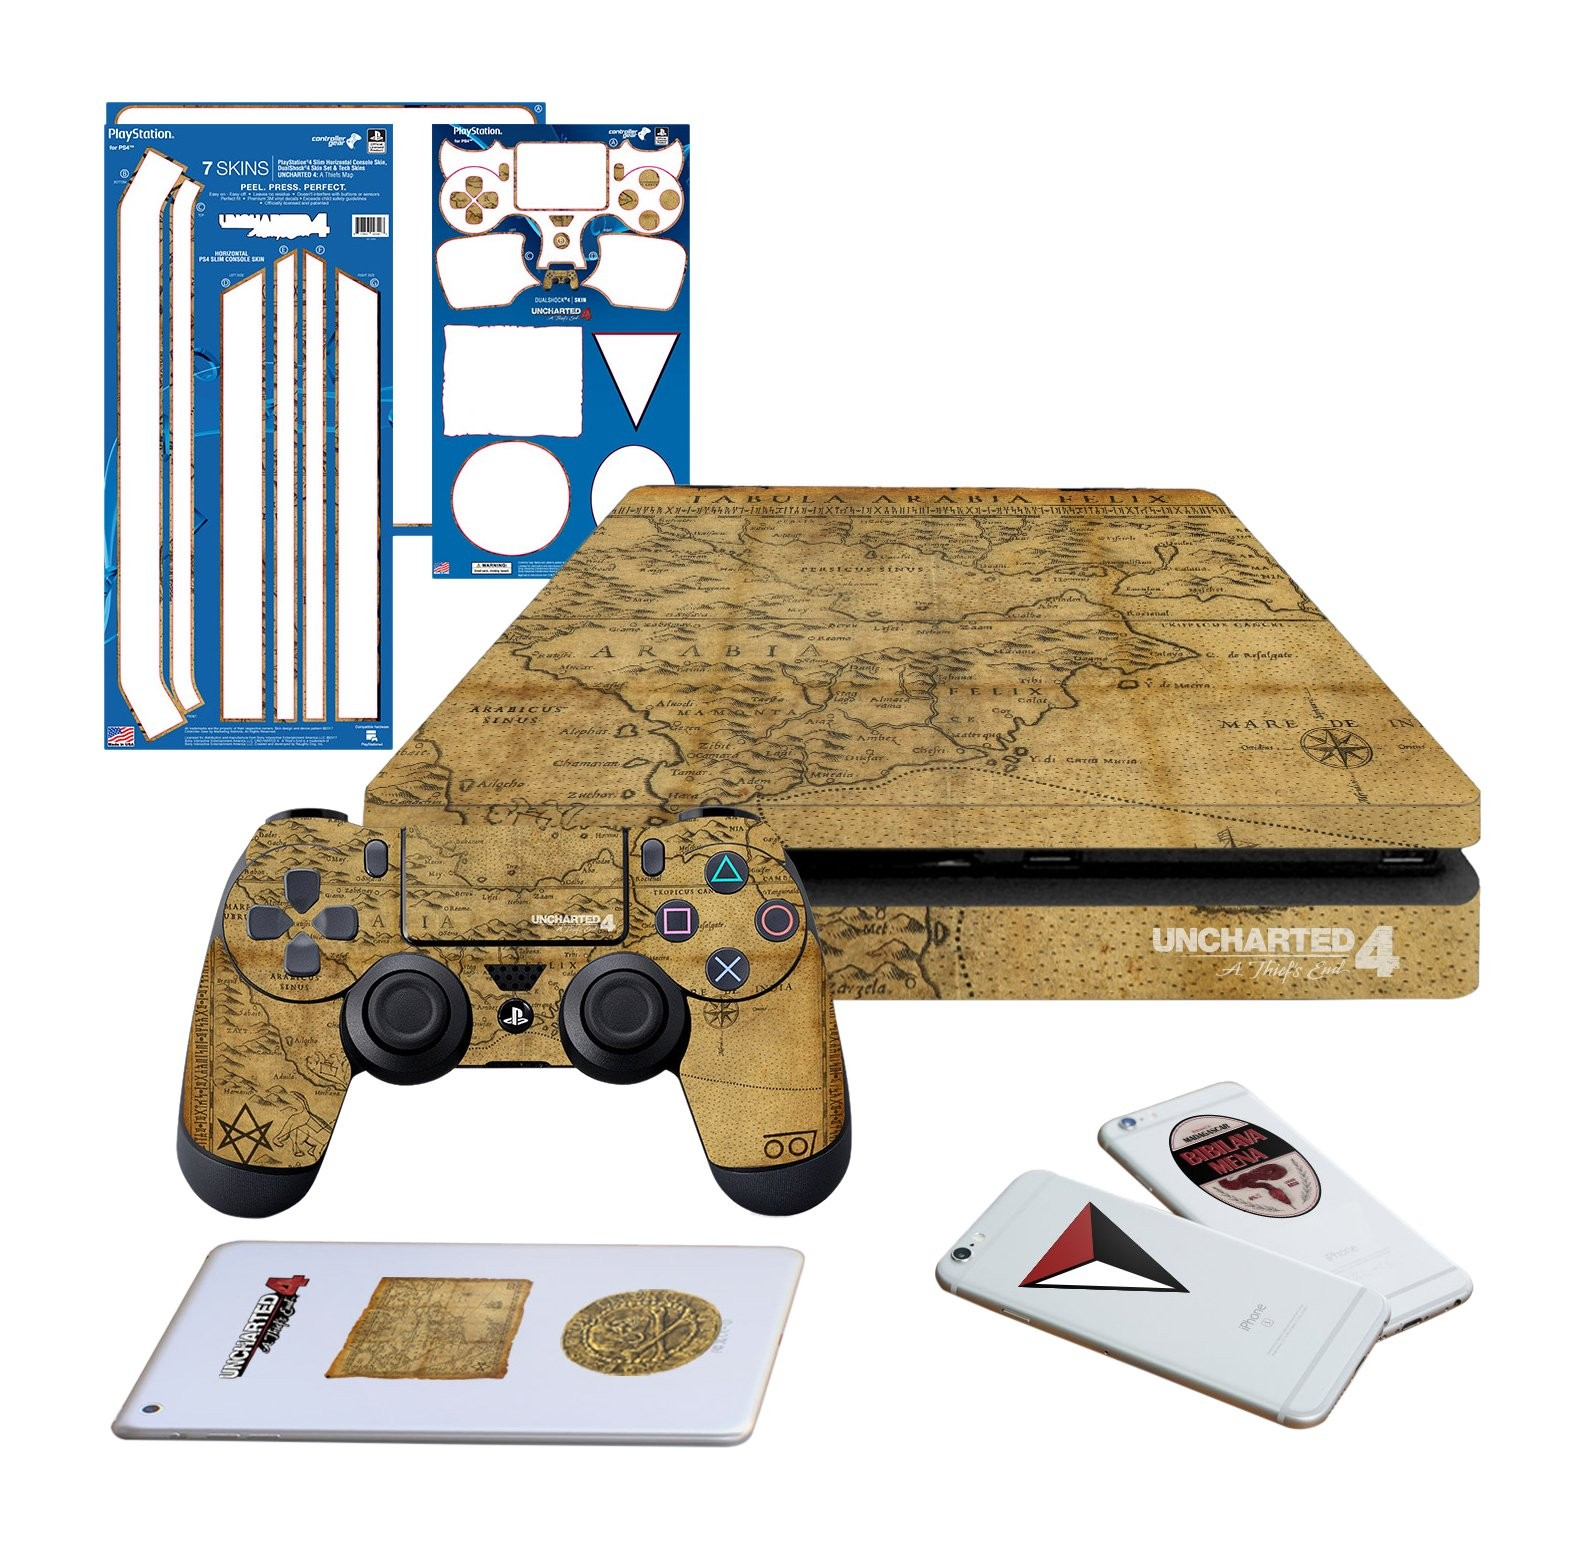 Uncharted 4 Map - PS4 SLIM Horizontal Console and Controller Gaming Skin Pack - Officially Licensed by PlayStation - Controller Gear